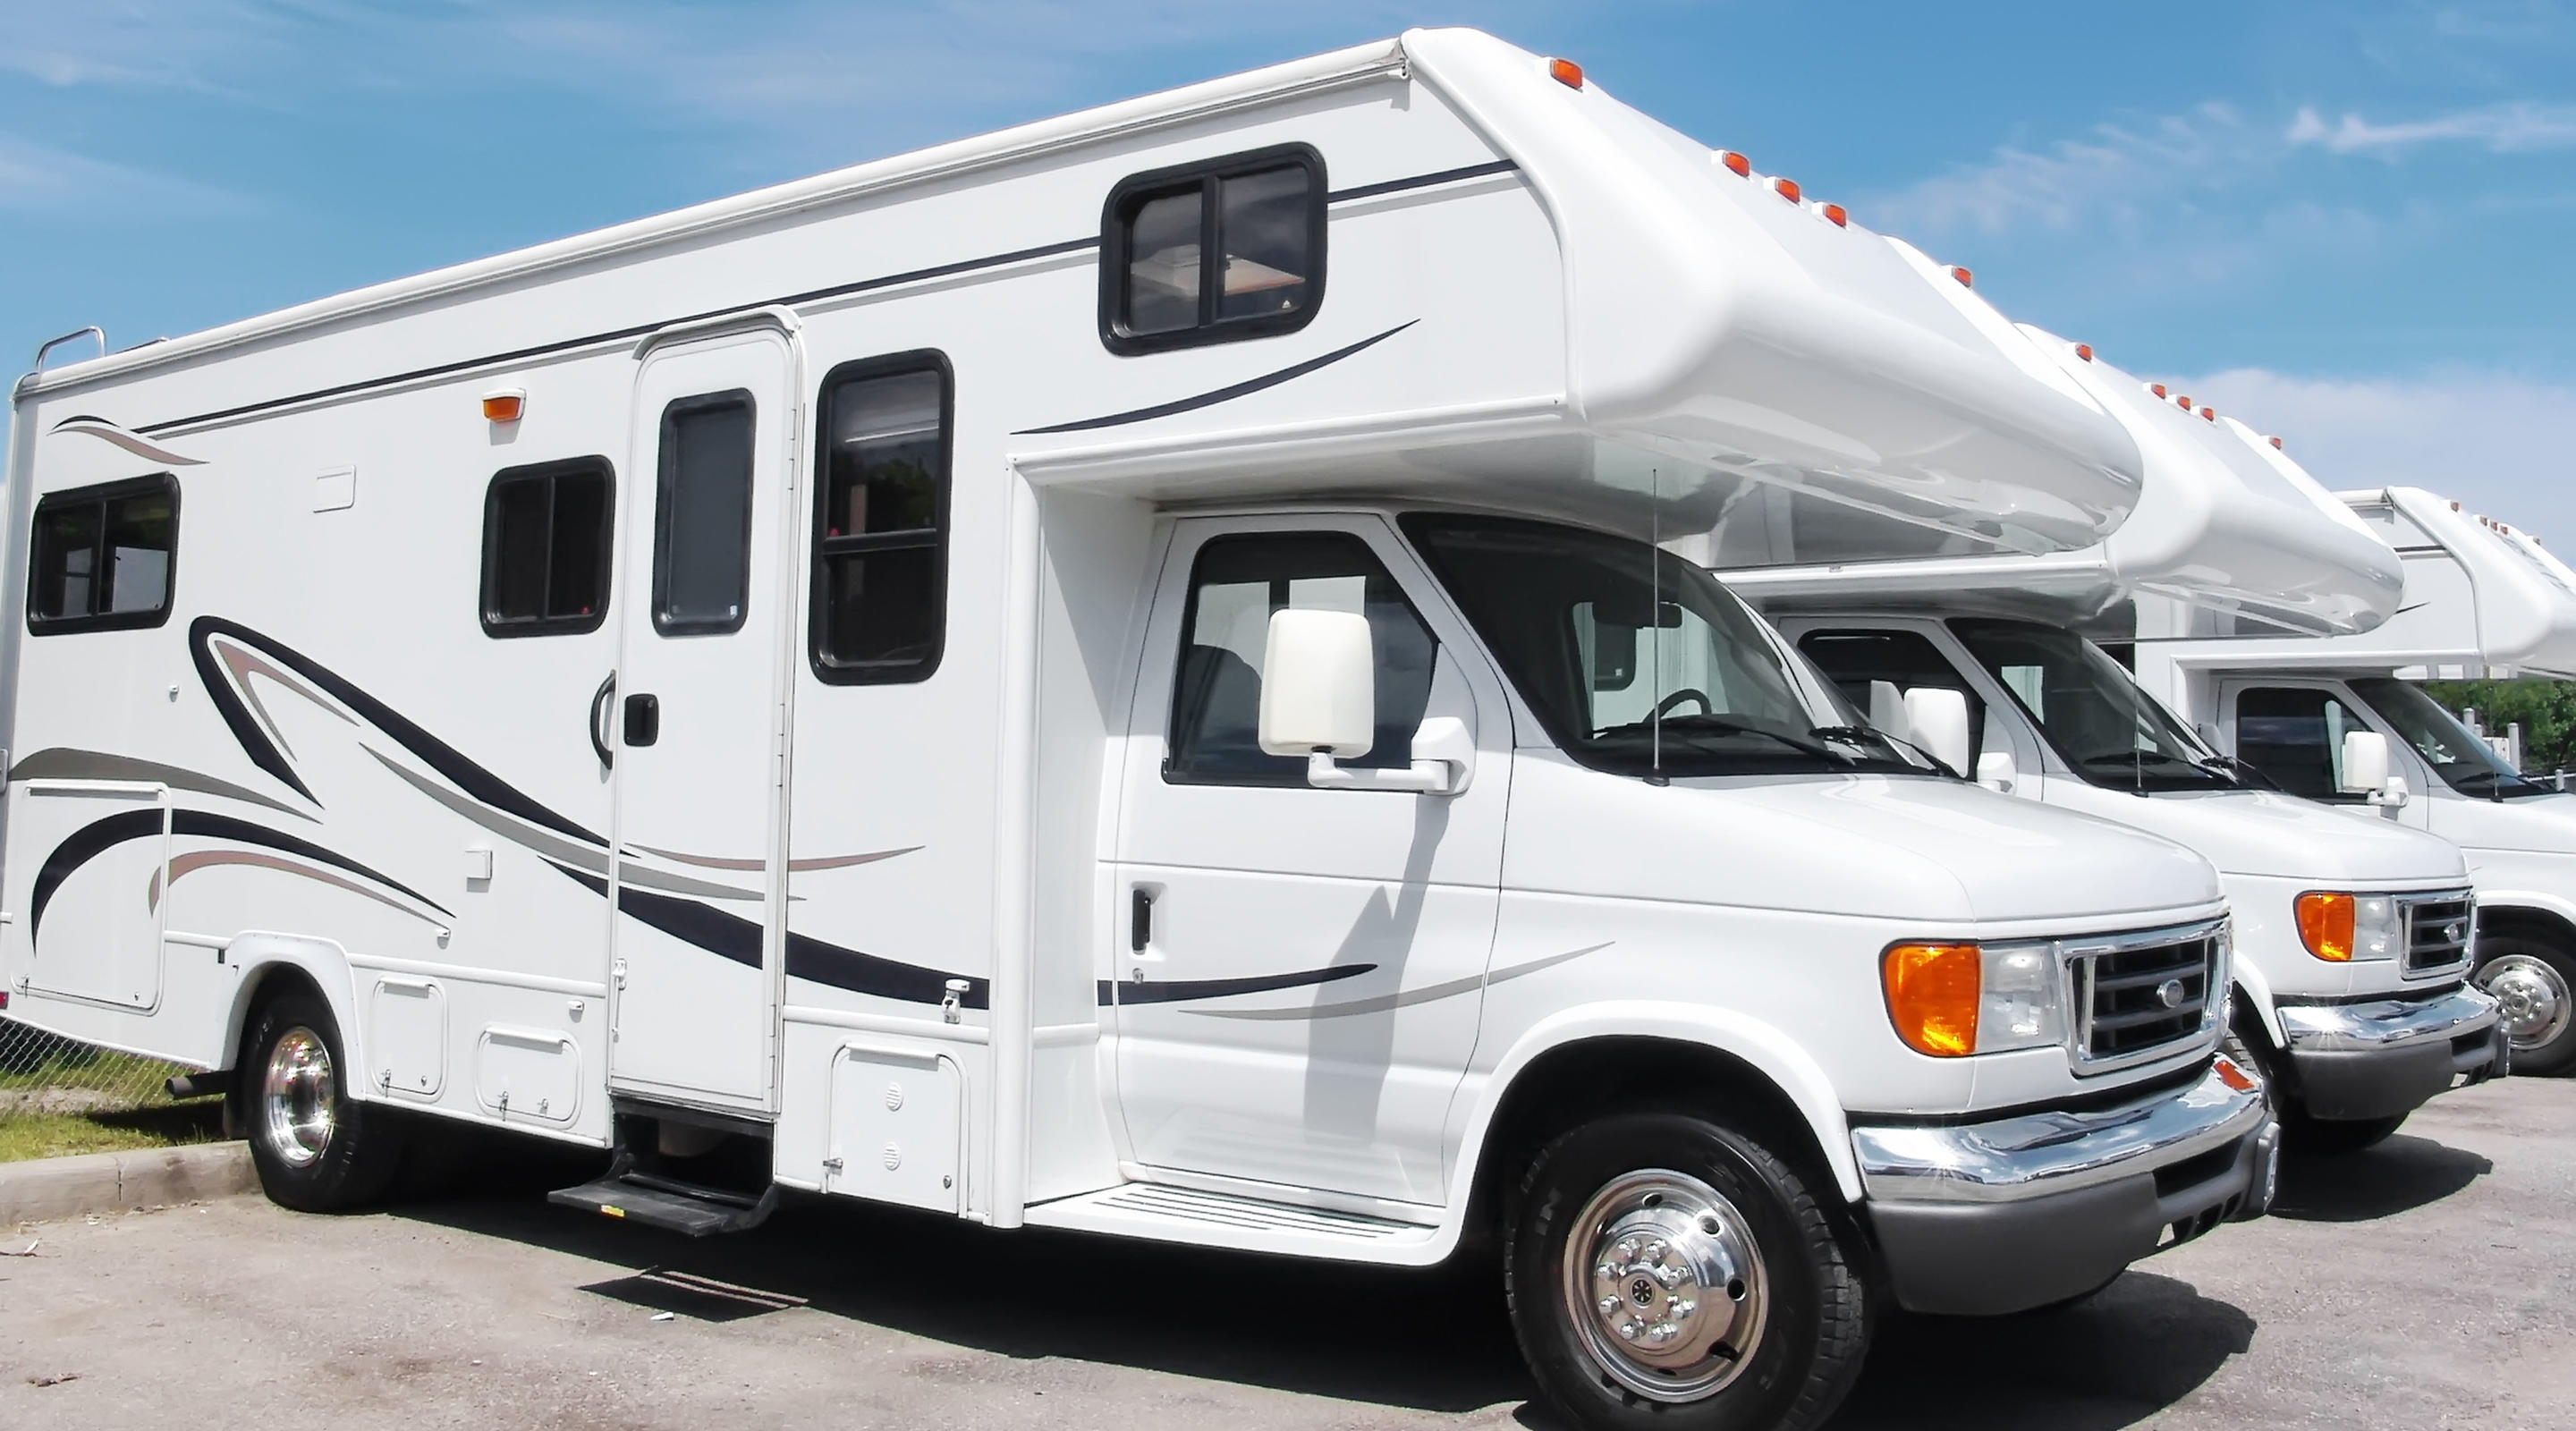 RV Floor Plans - Who Said RVs Are Not Tiny Houses?